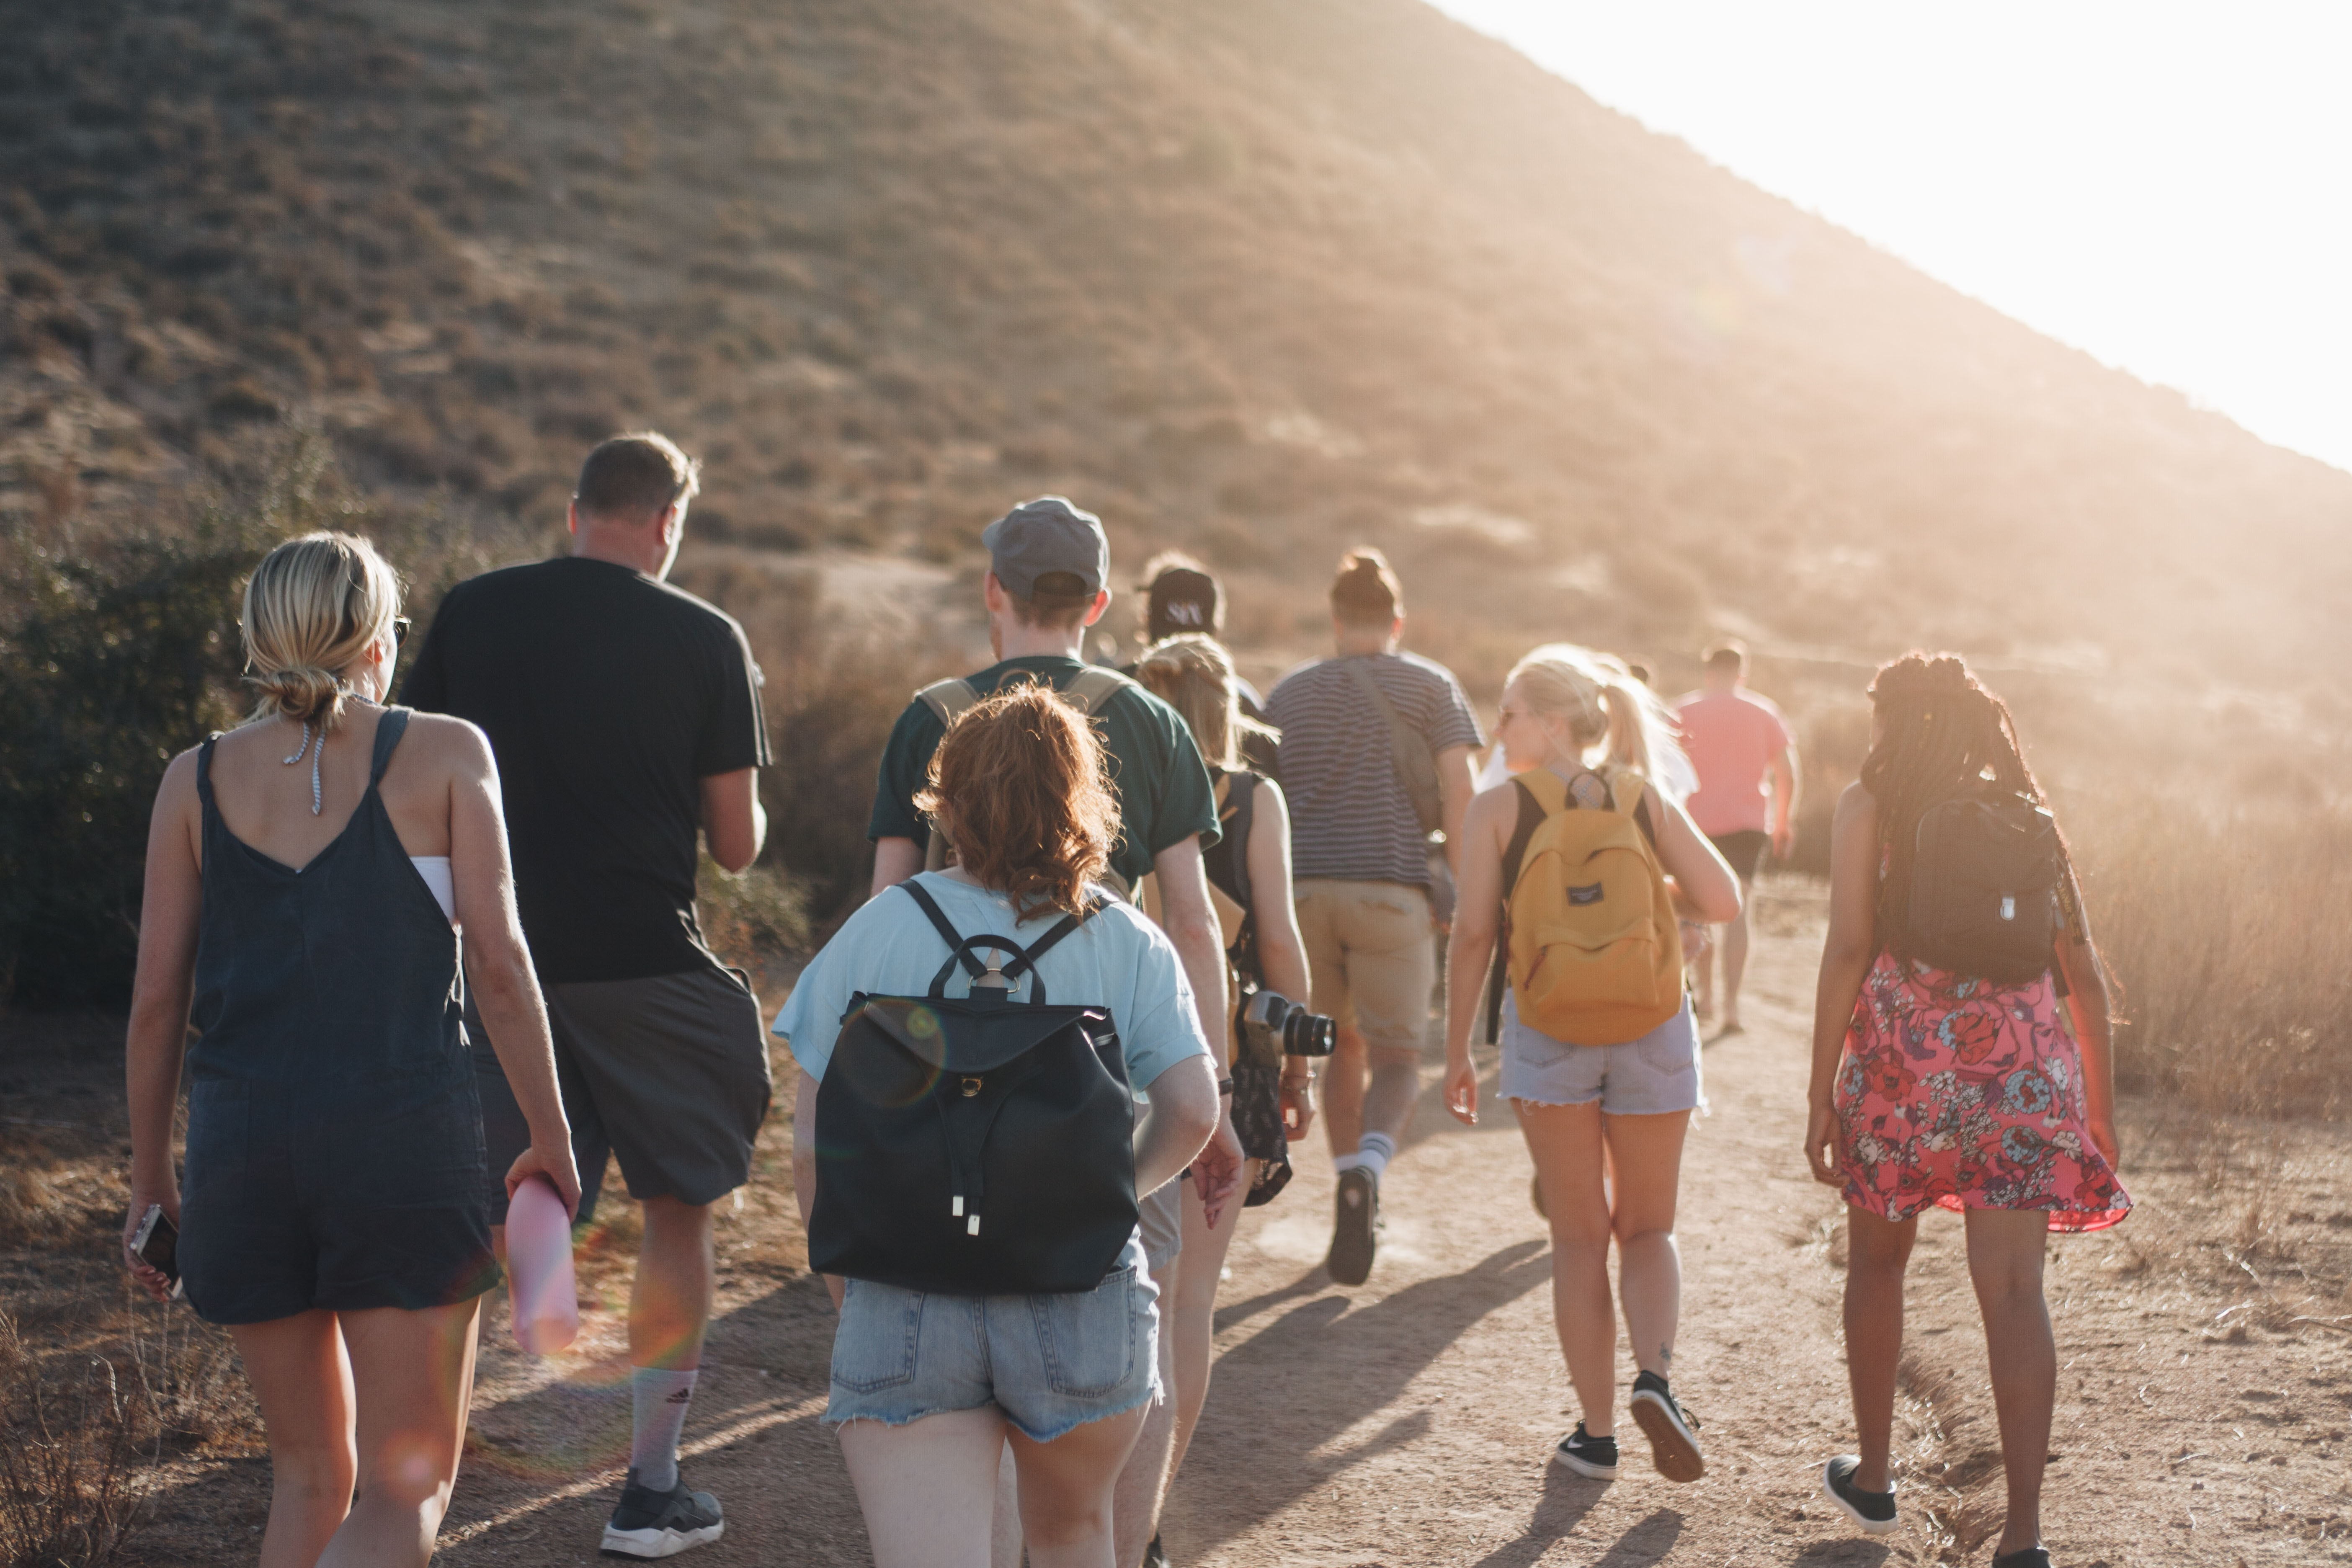 Young people going on a hike